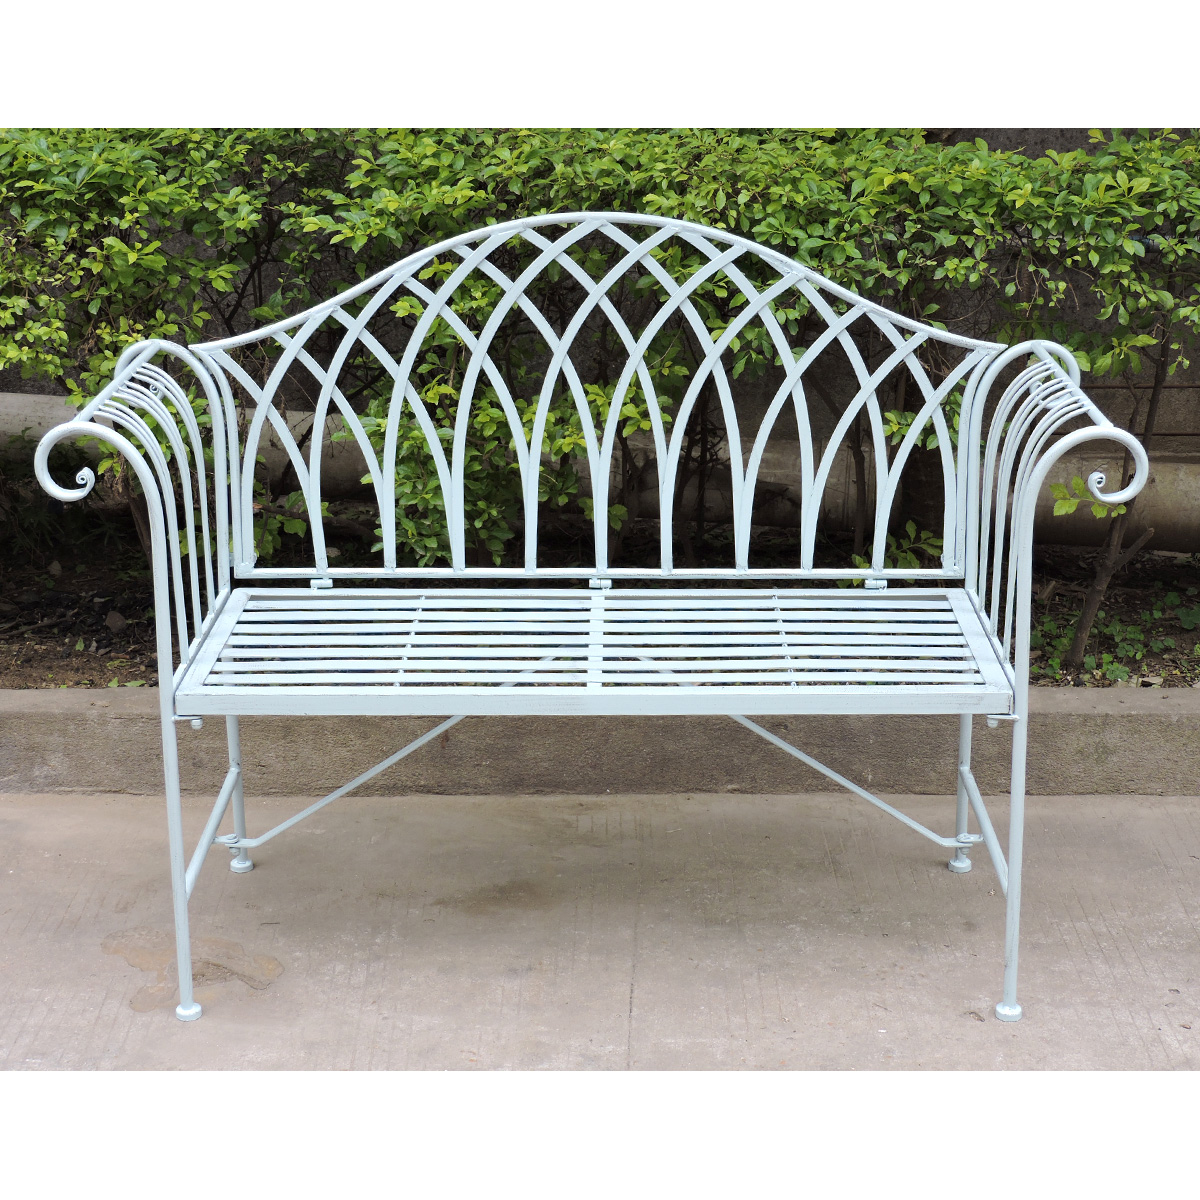 Charles bentley pastel shade wrought iron garden bench ornate patio outdoor seat ebay Wrought iron outdoor bench